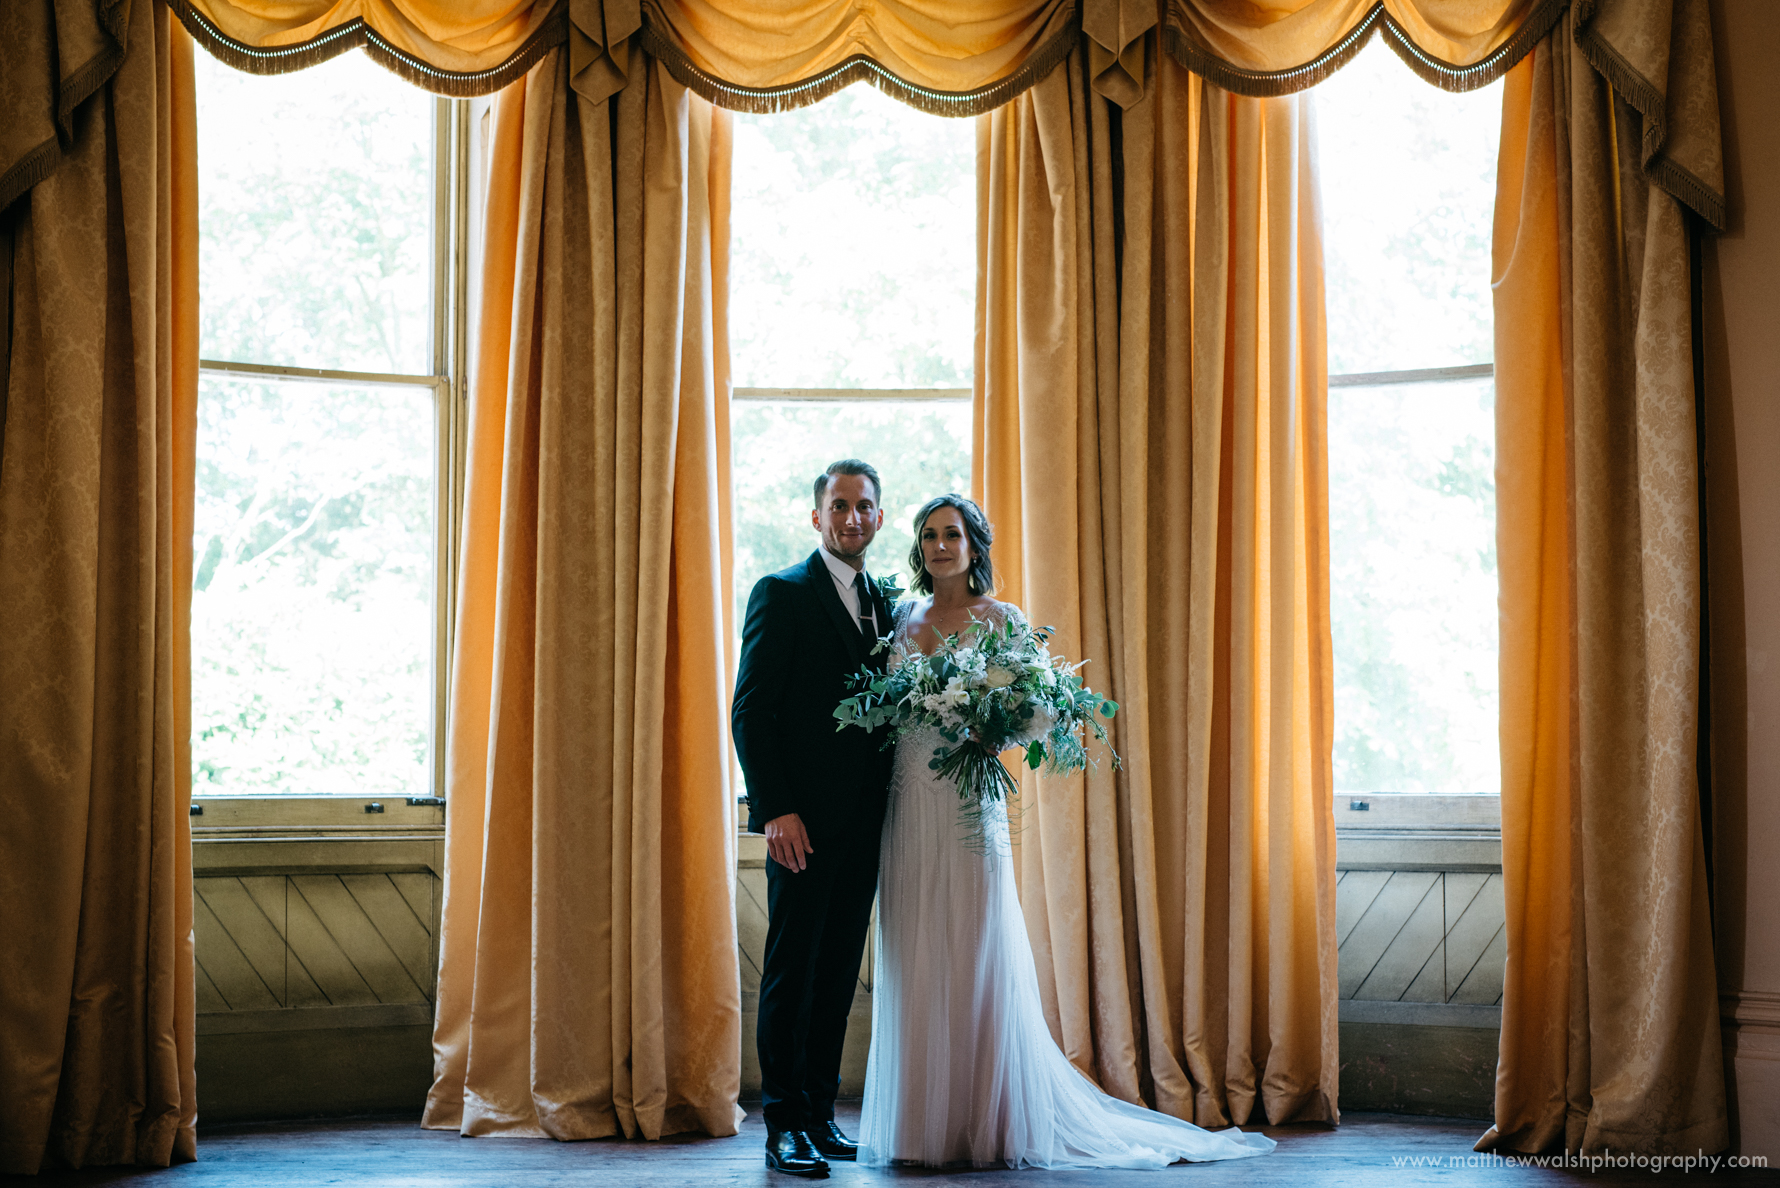 Bride and groom pose for a photograph in front of the big windows